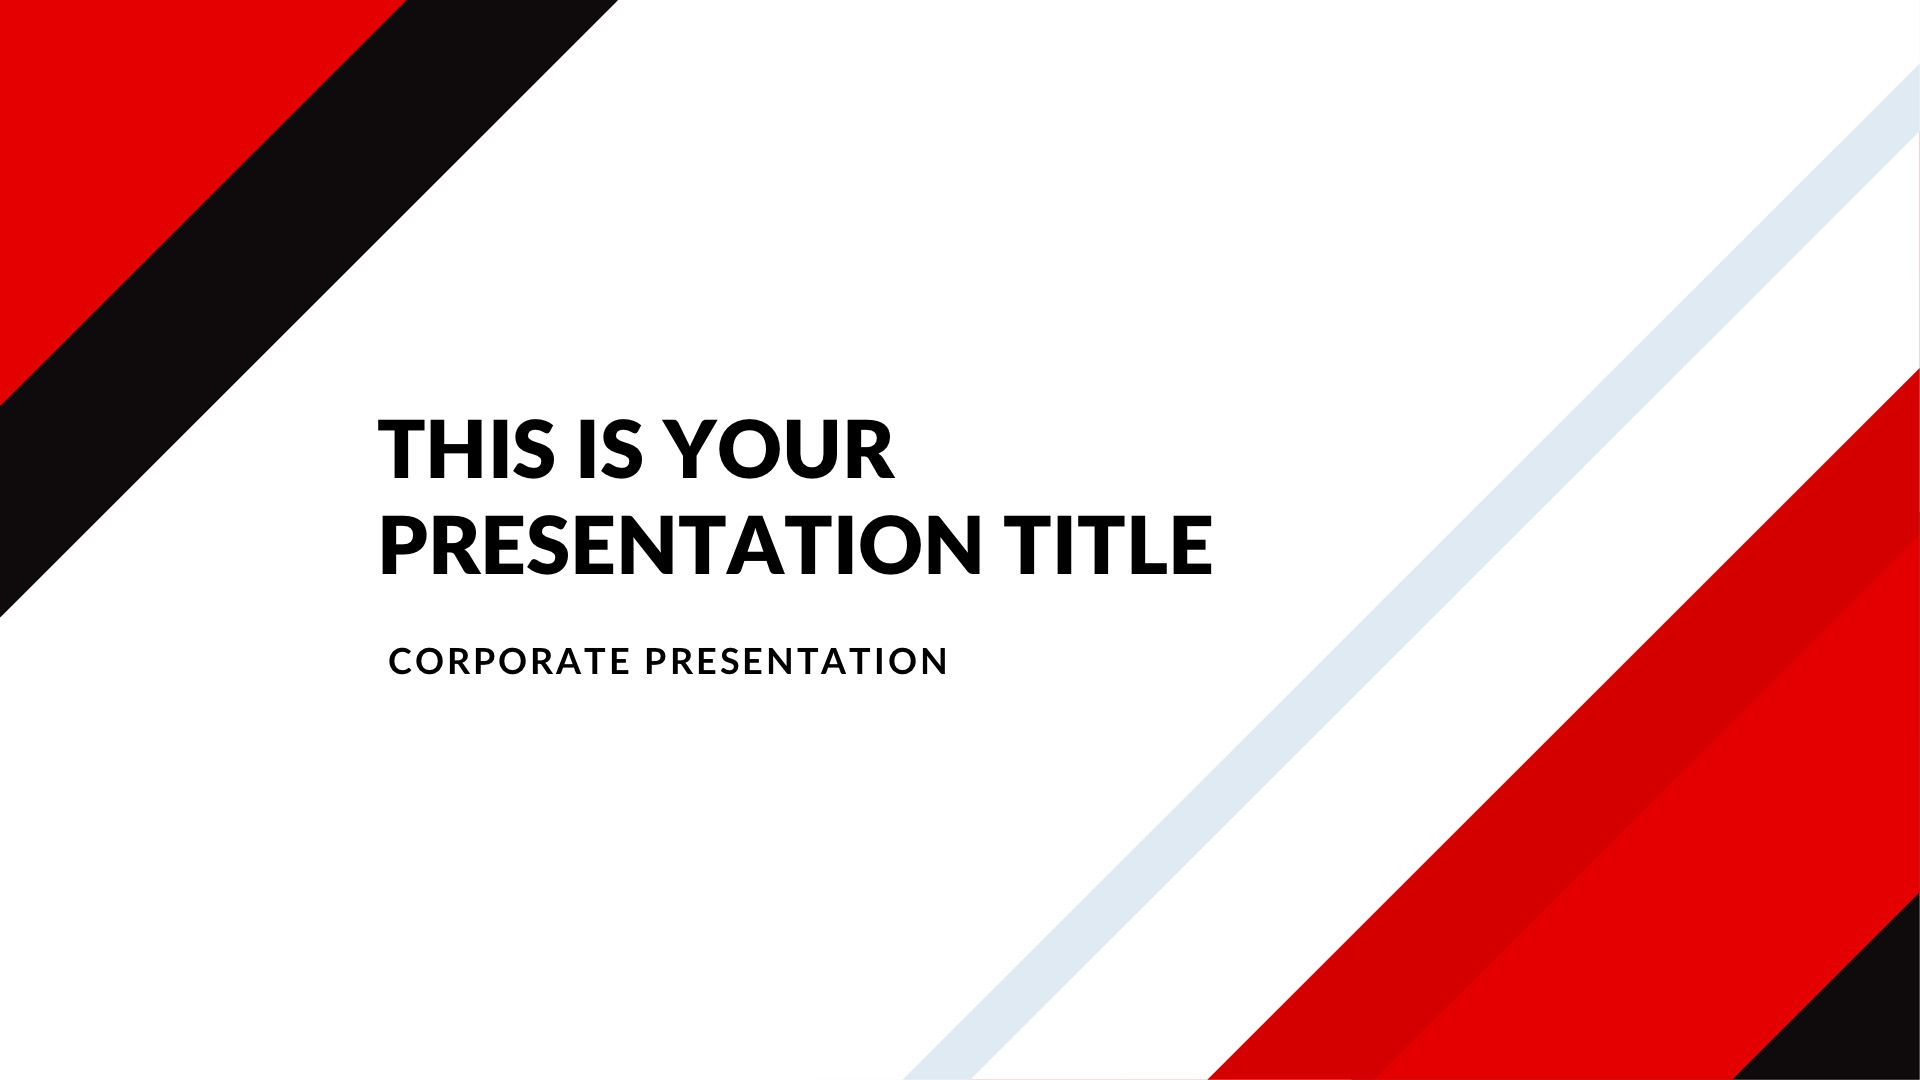 Market Real Estate Free PowerPoint Template, Google Slides, Keynote